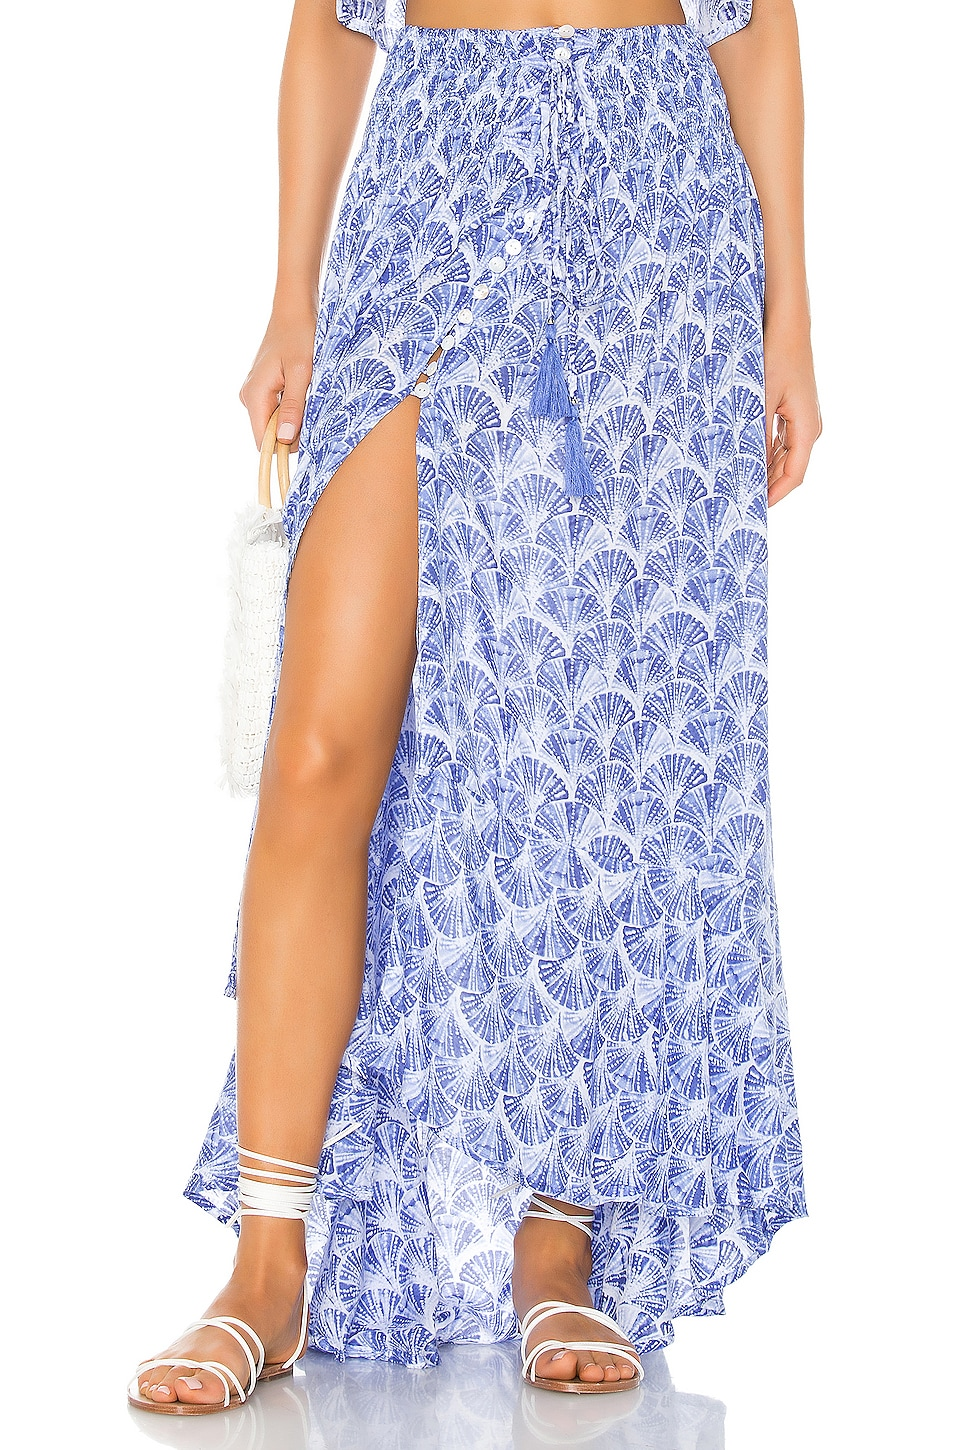 Tiare Hawaii Dakota Skirt in Fan Shells Blue